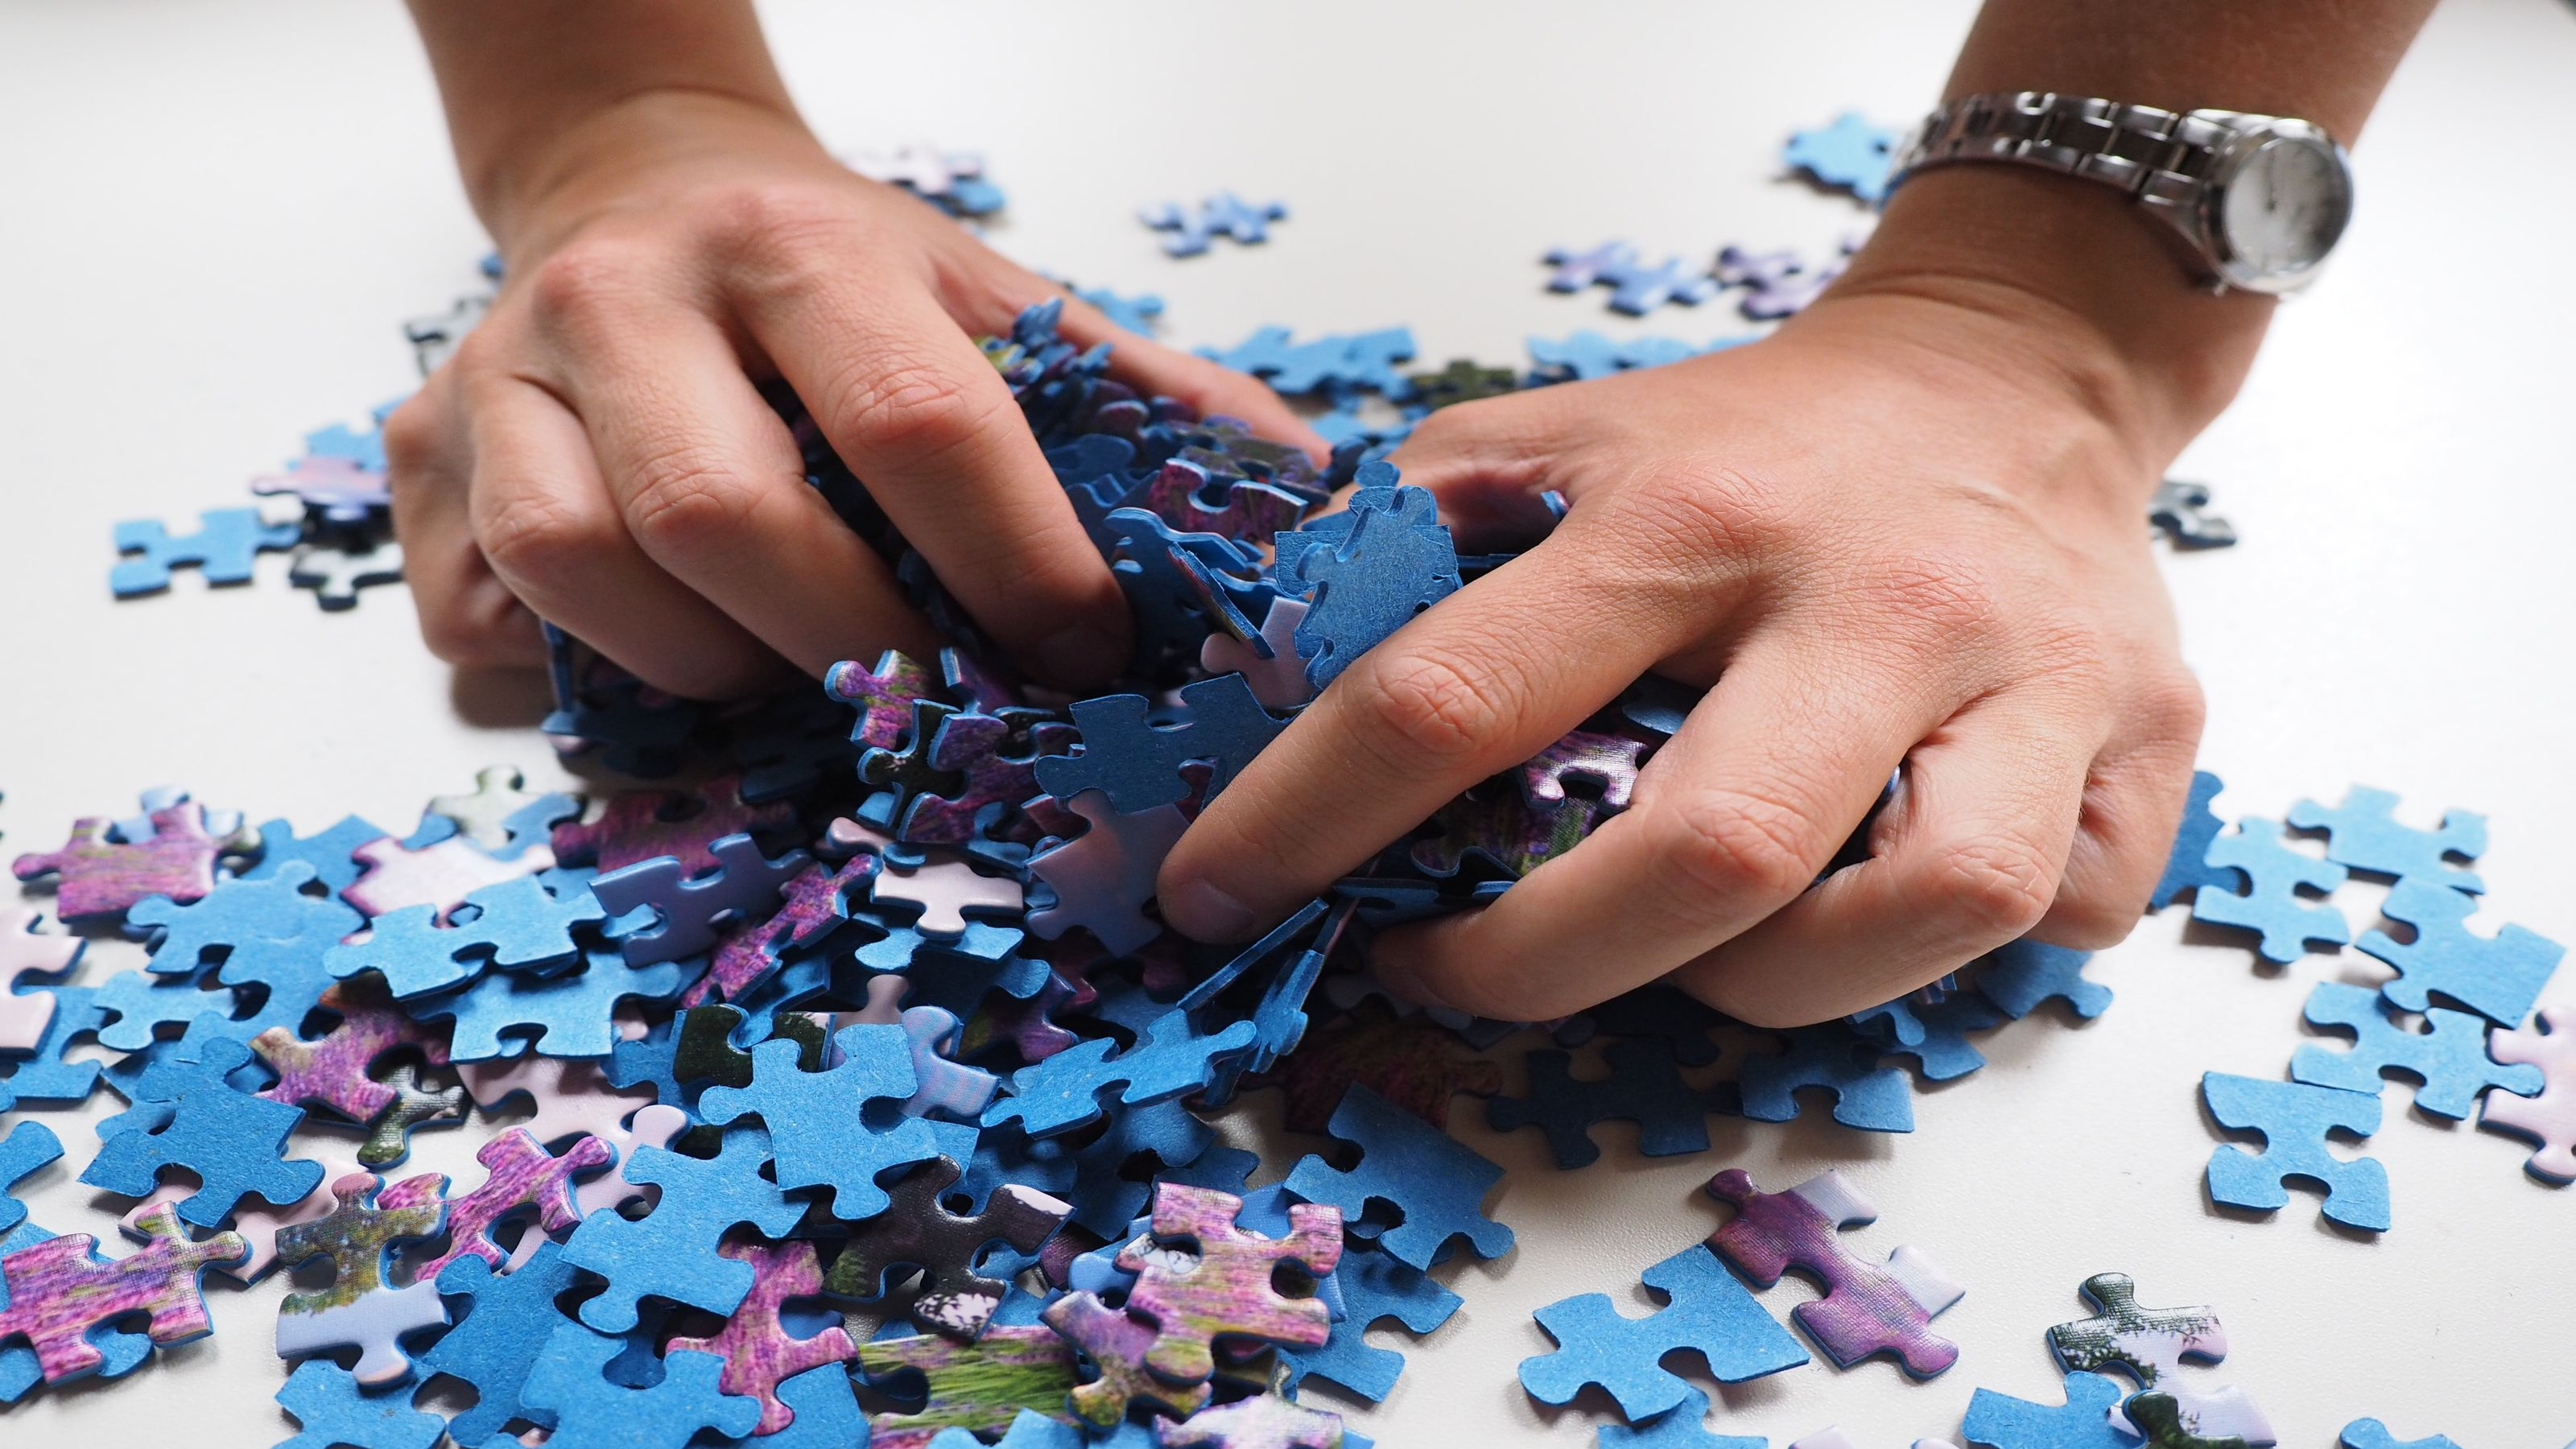 hands clenching puzzle pieces